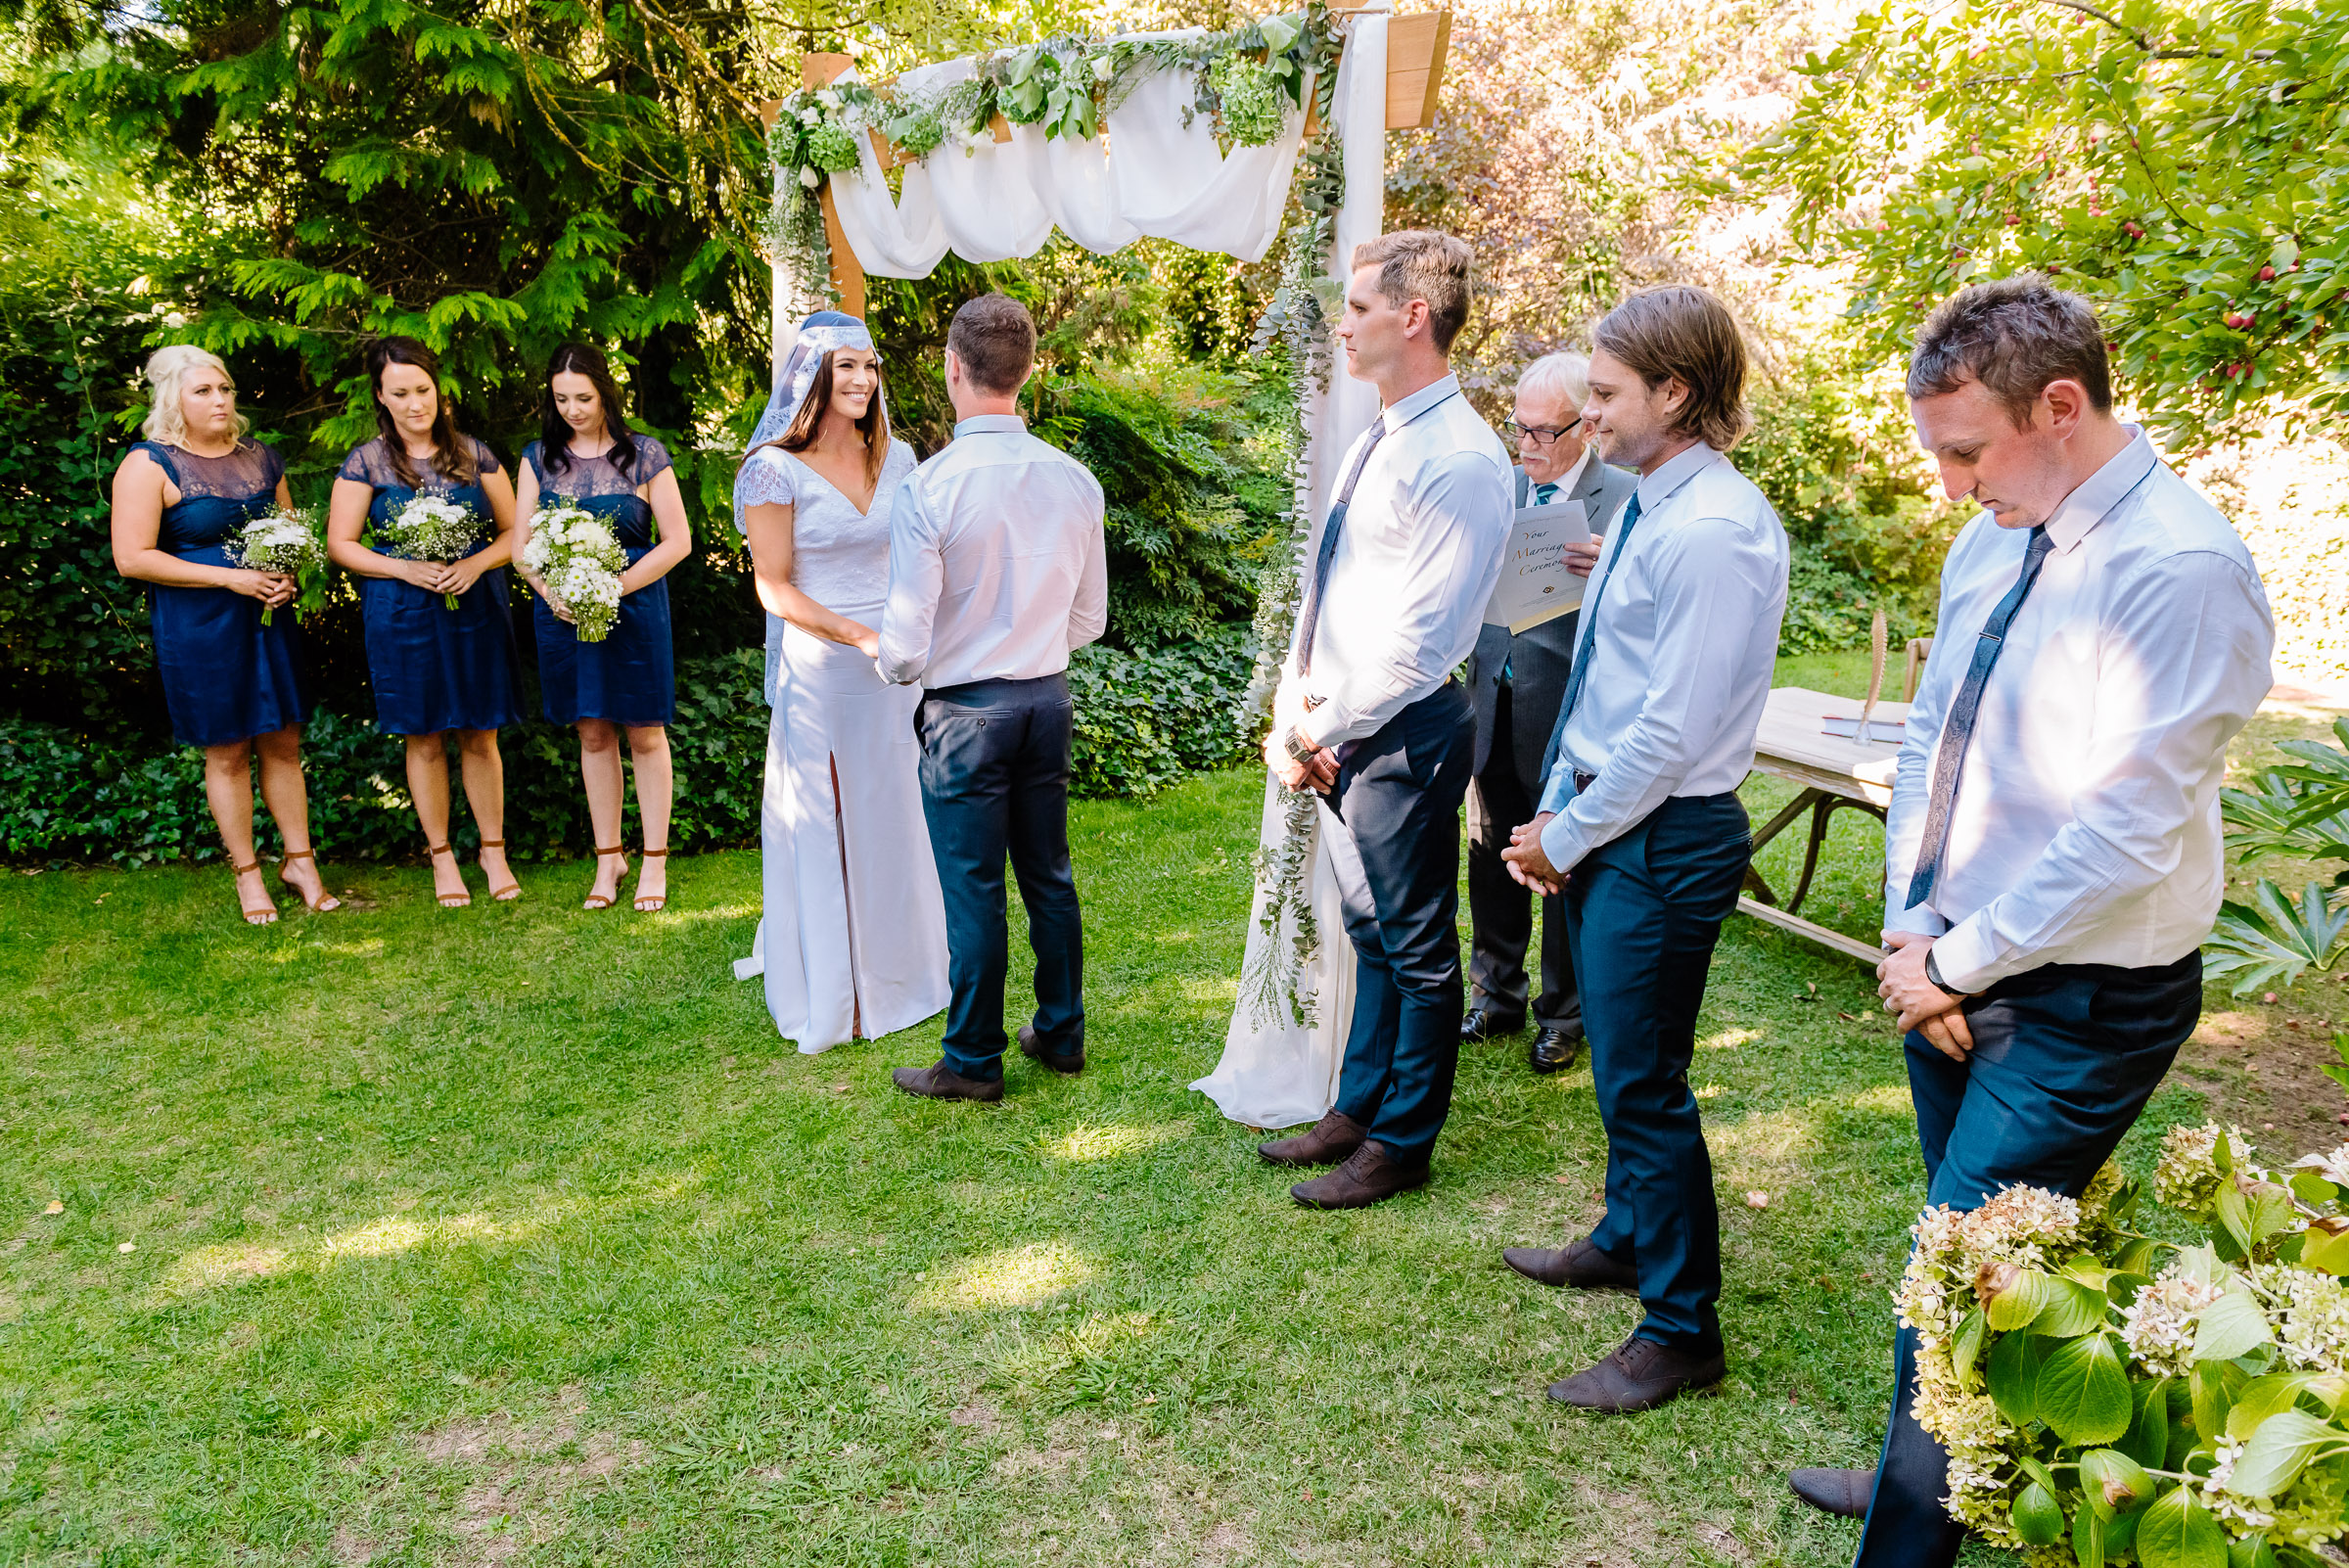 Carly and Daniel's outdoor ceremony at Chateau Dore Winery in Bendigo